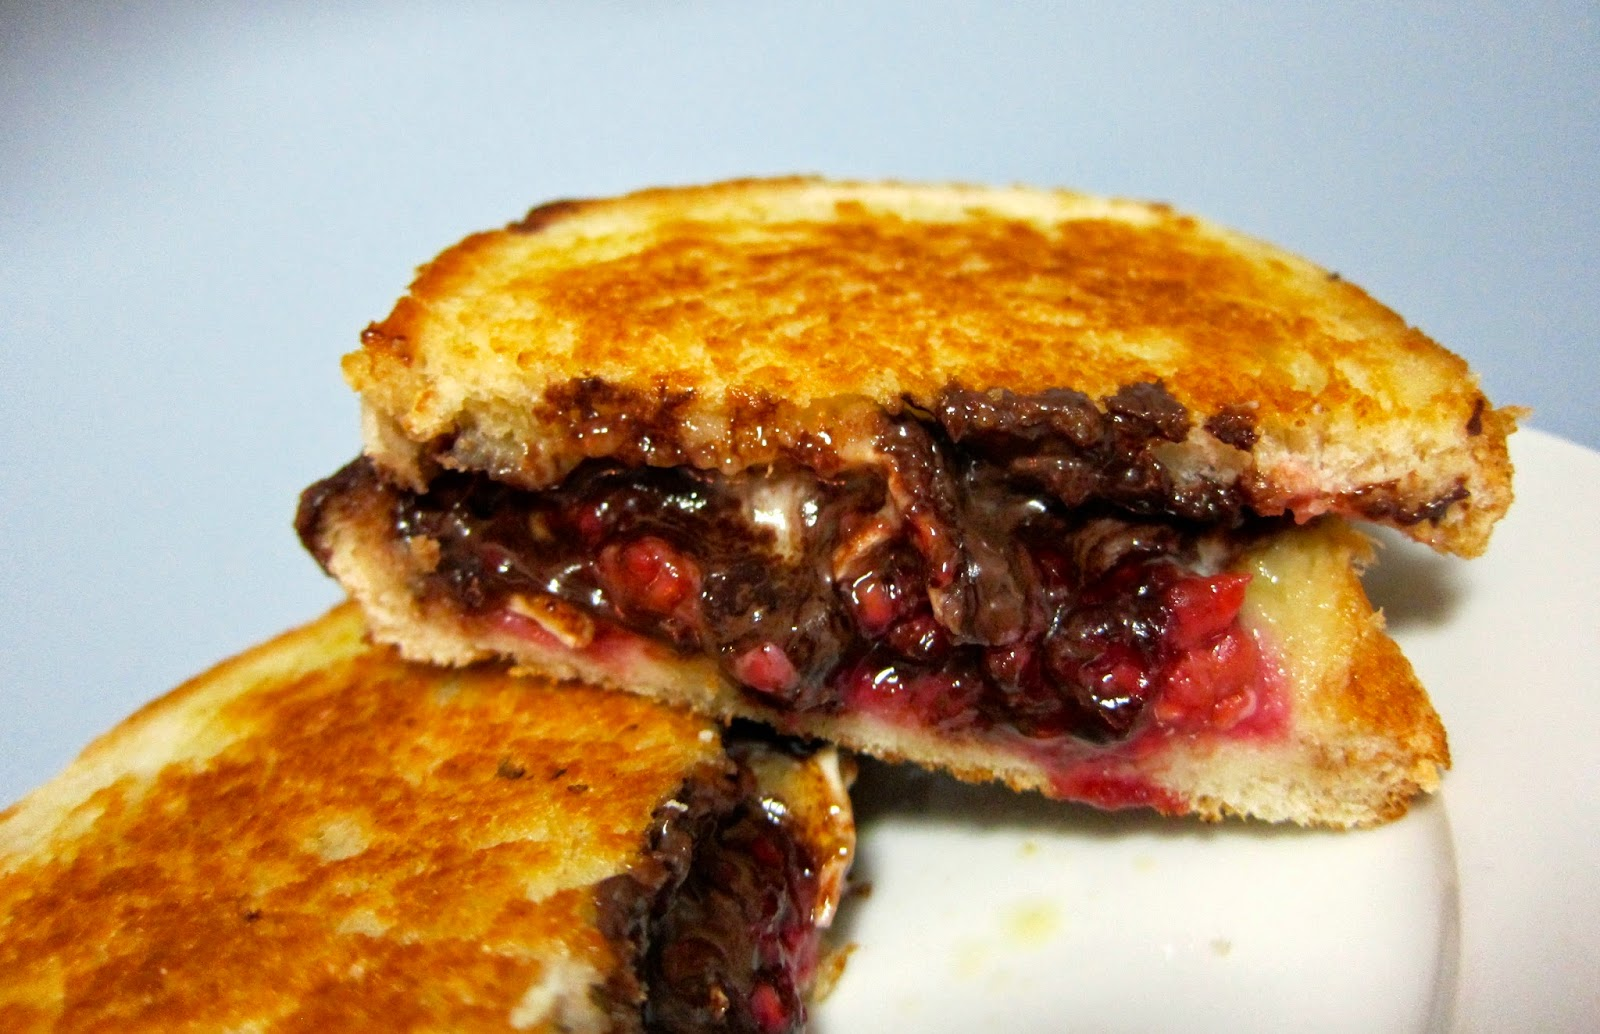 dark chocolate raspberry and brie grilled cheese dessert sandwich recipe